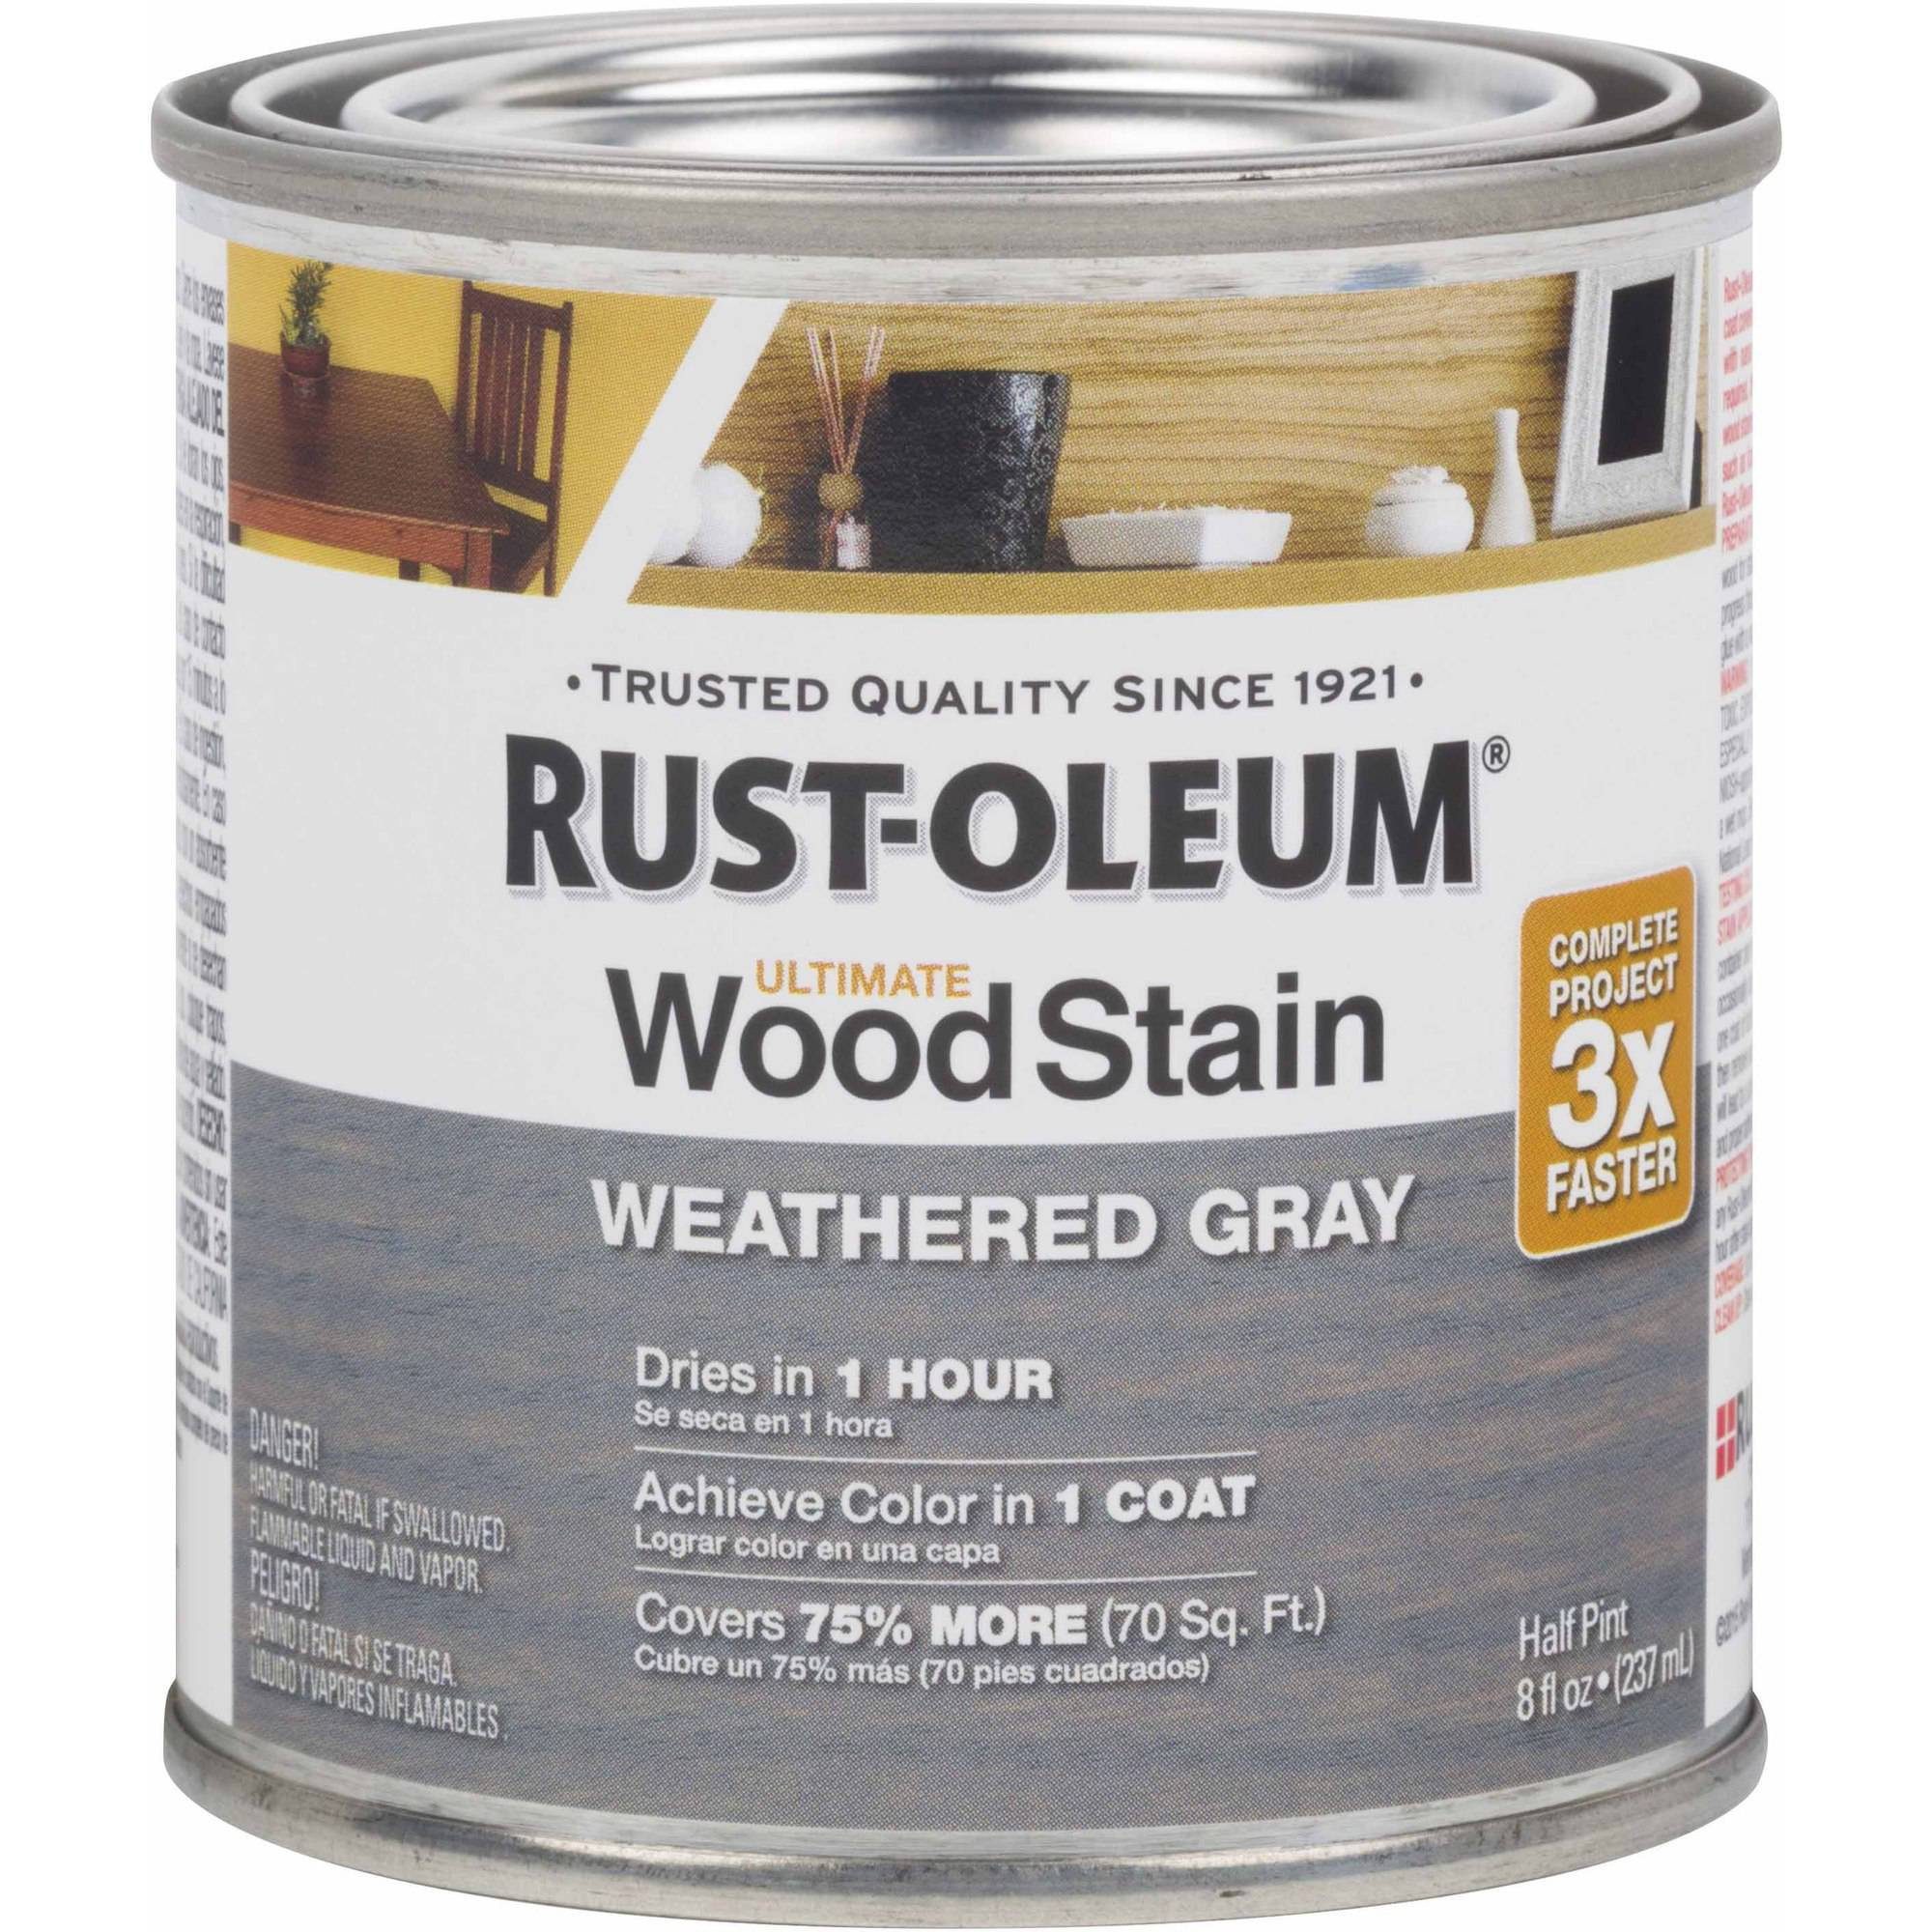 Rust-Oleum Ultimate Wood Stain Half-Pint, Weathered Gray